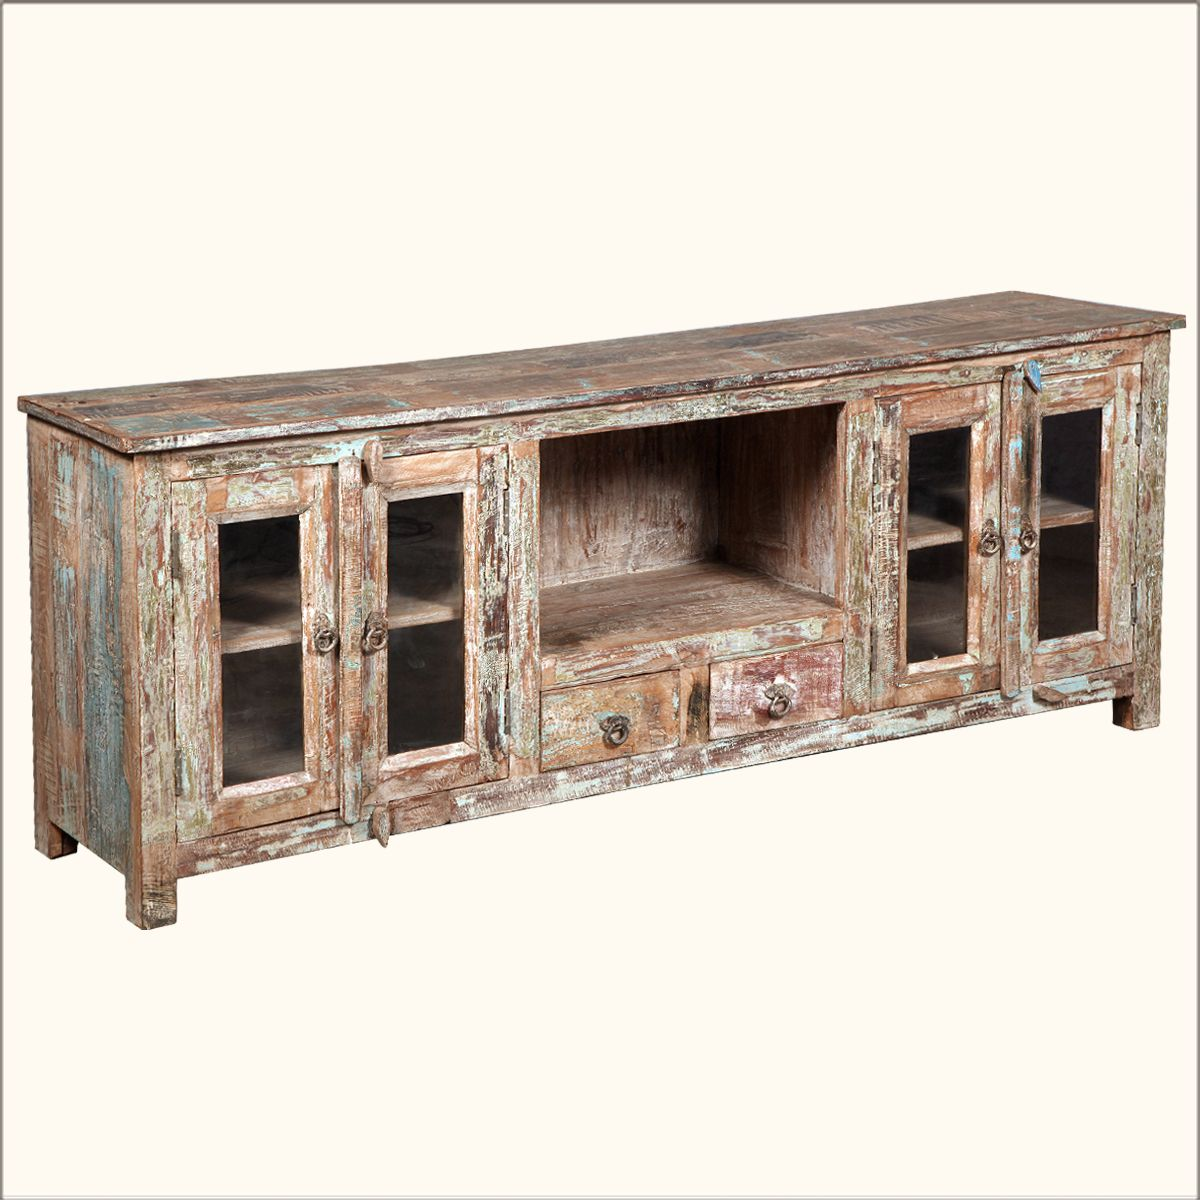 Rustic Reclaimed Handcrafted Solid Wood TV Stand Media Center